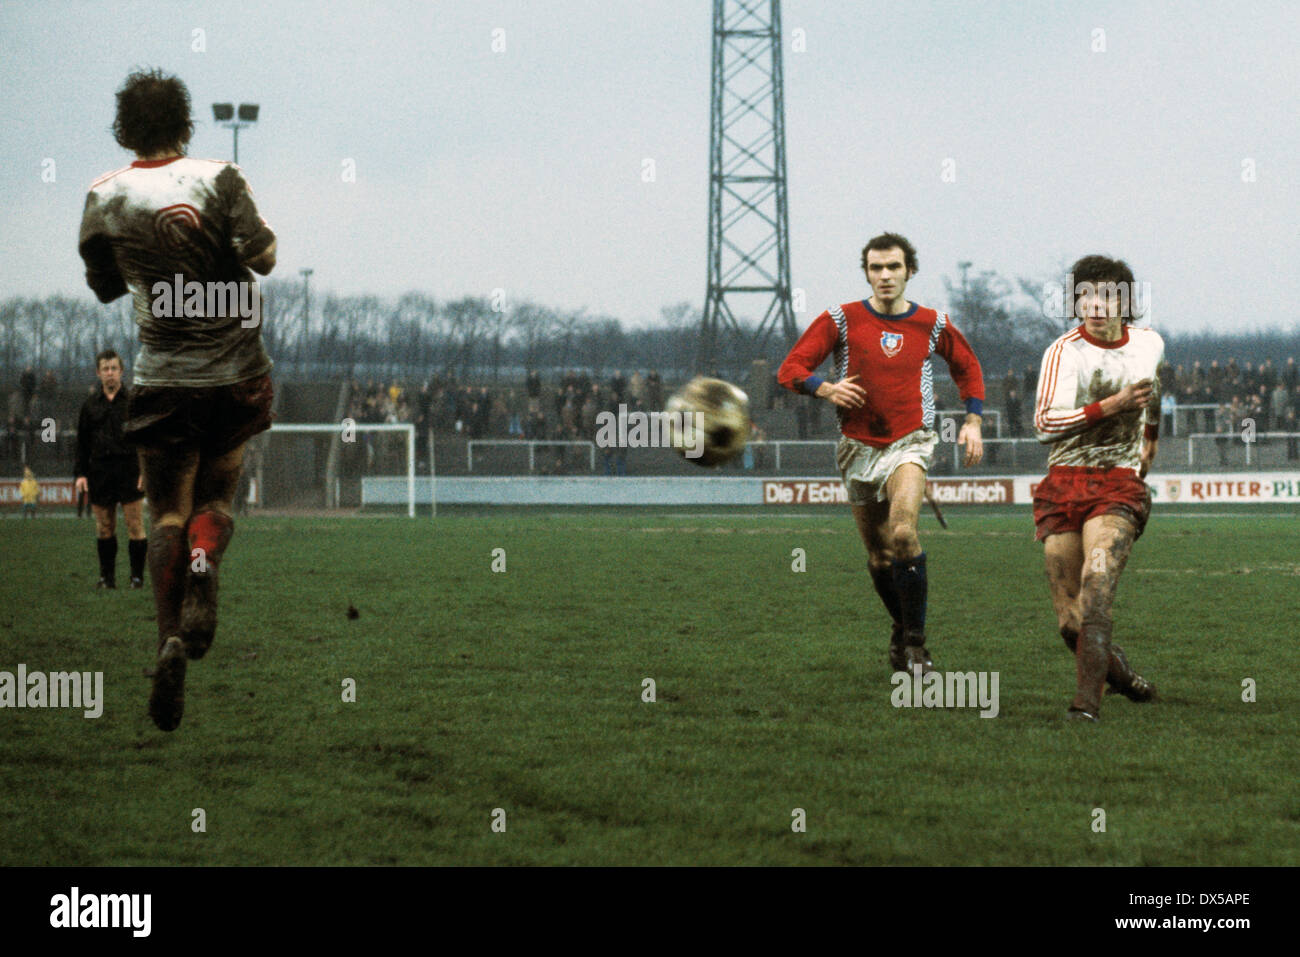 football, 2. Bundesliga Nord, 1974/1975, Niederrheinstadion, Rot Weiss Oberhausen versus FC Bayer 05 Uerdingen 1:3, shot on goal by Willi Quasten (RWO) right, left besides Heinz Mostert (Bayer) - Stock Image